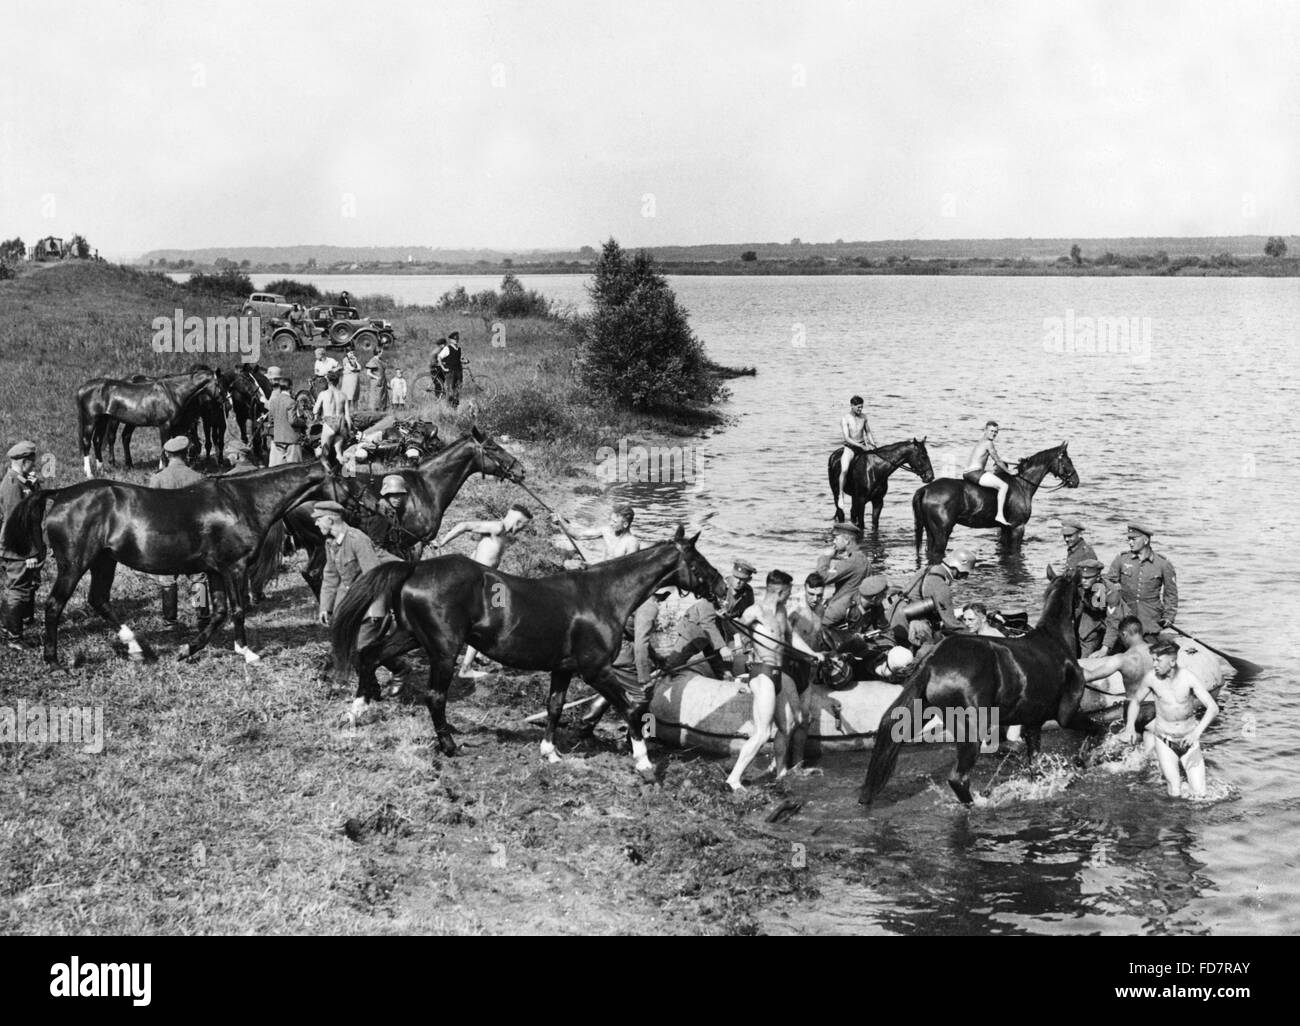 Cavalry of the Wehrmacht practices river crossing in the 30s Stock Photo